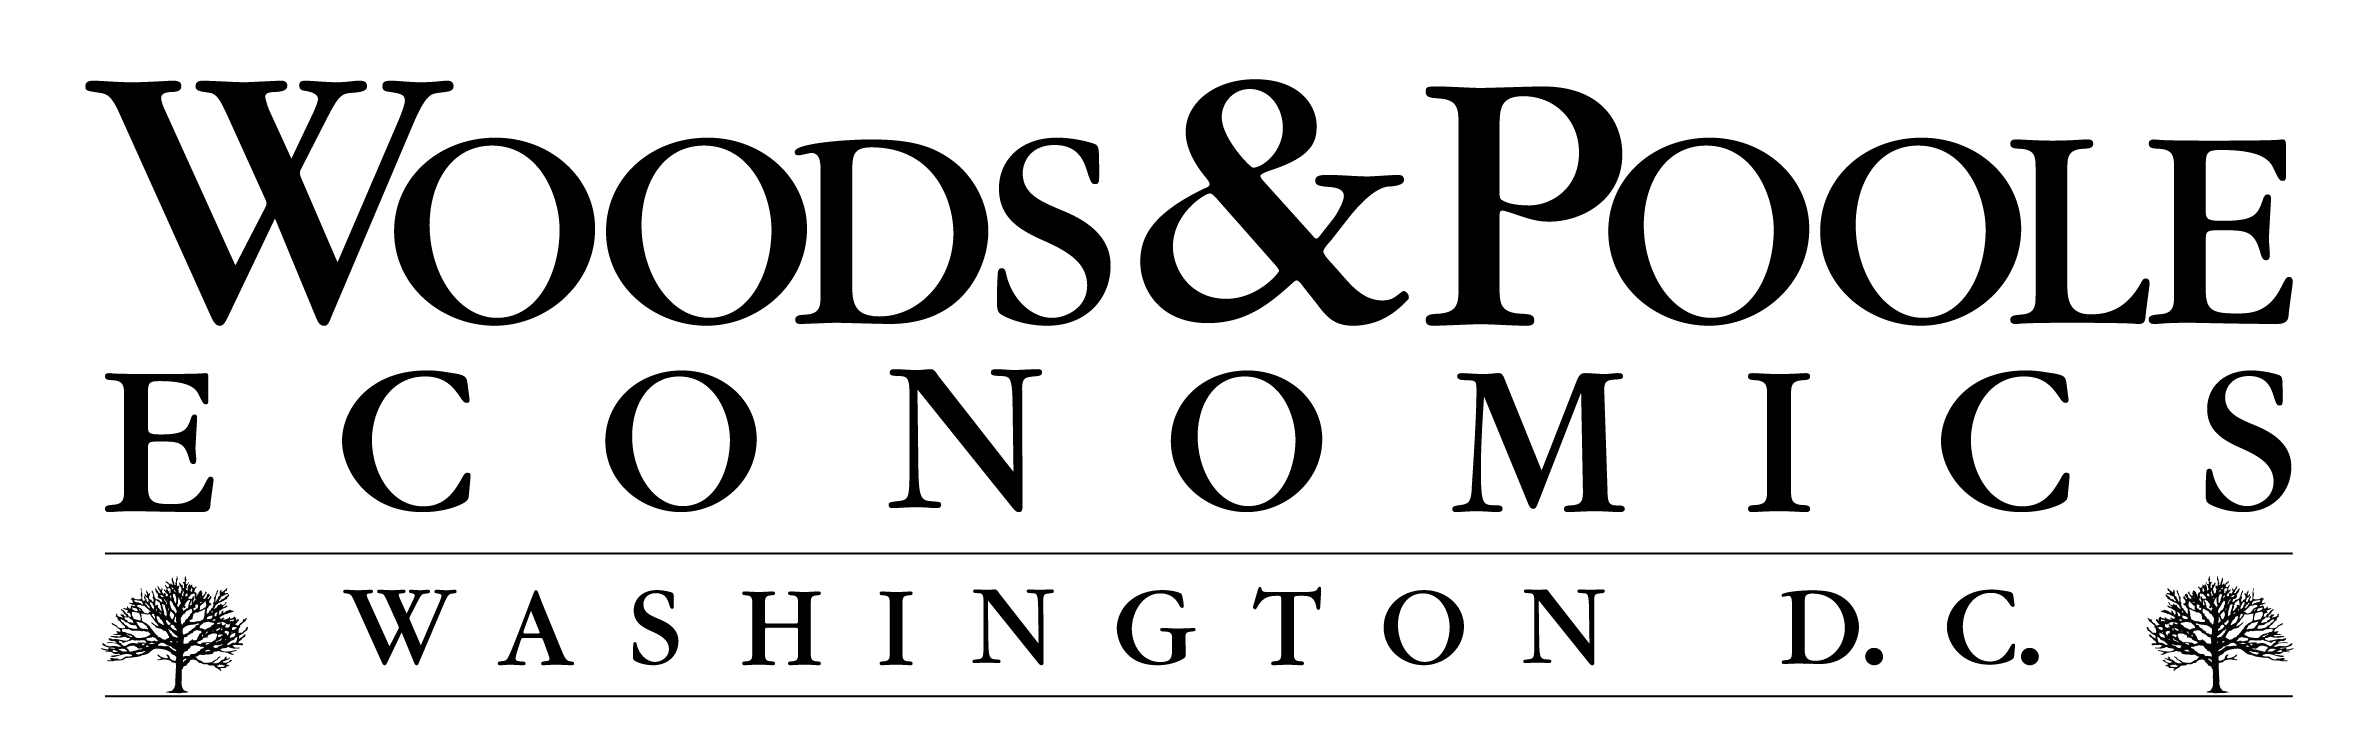 RUTLAND VT (FIPS 40860) | Woods & Poole Economics, Inc